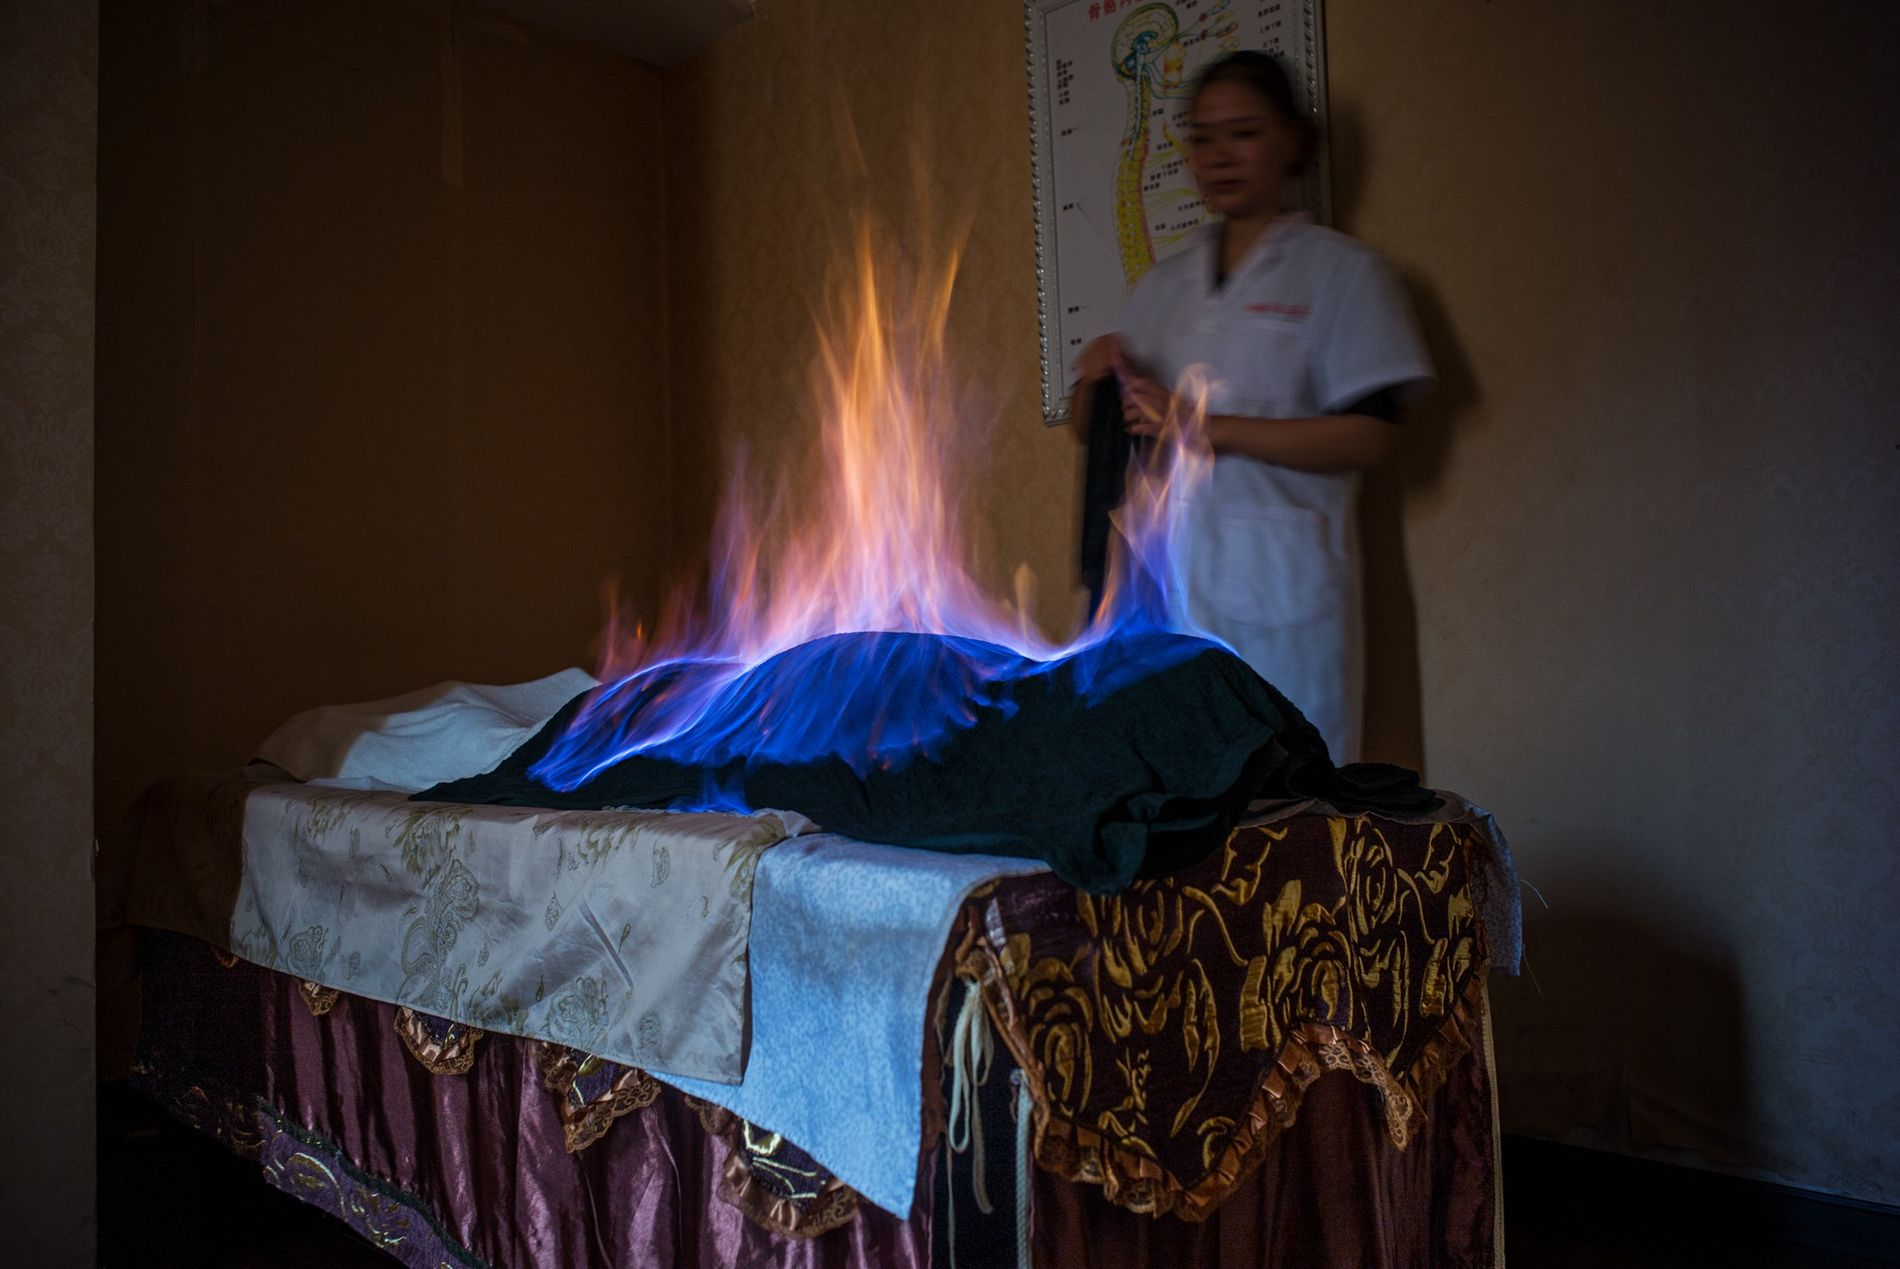 In a fire treatment session in Chengdu, an alcohol-soaked cloth is draped over a patient and ...